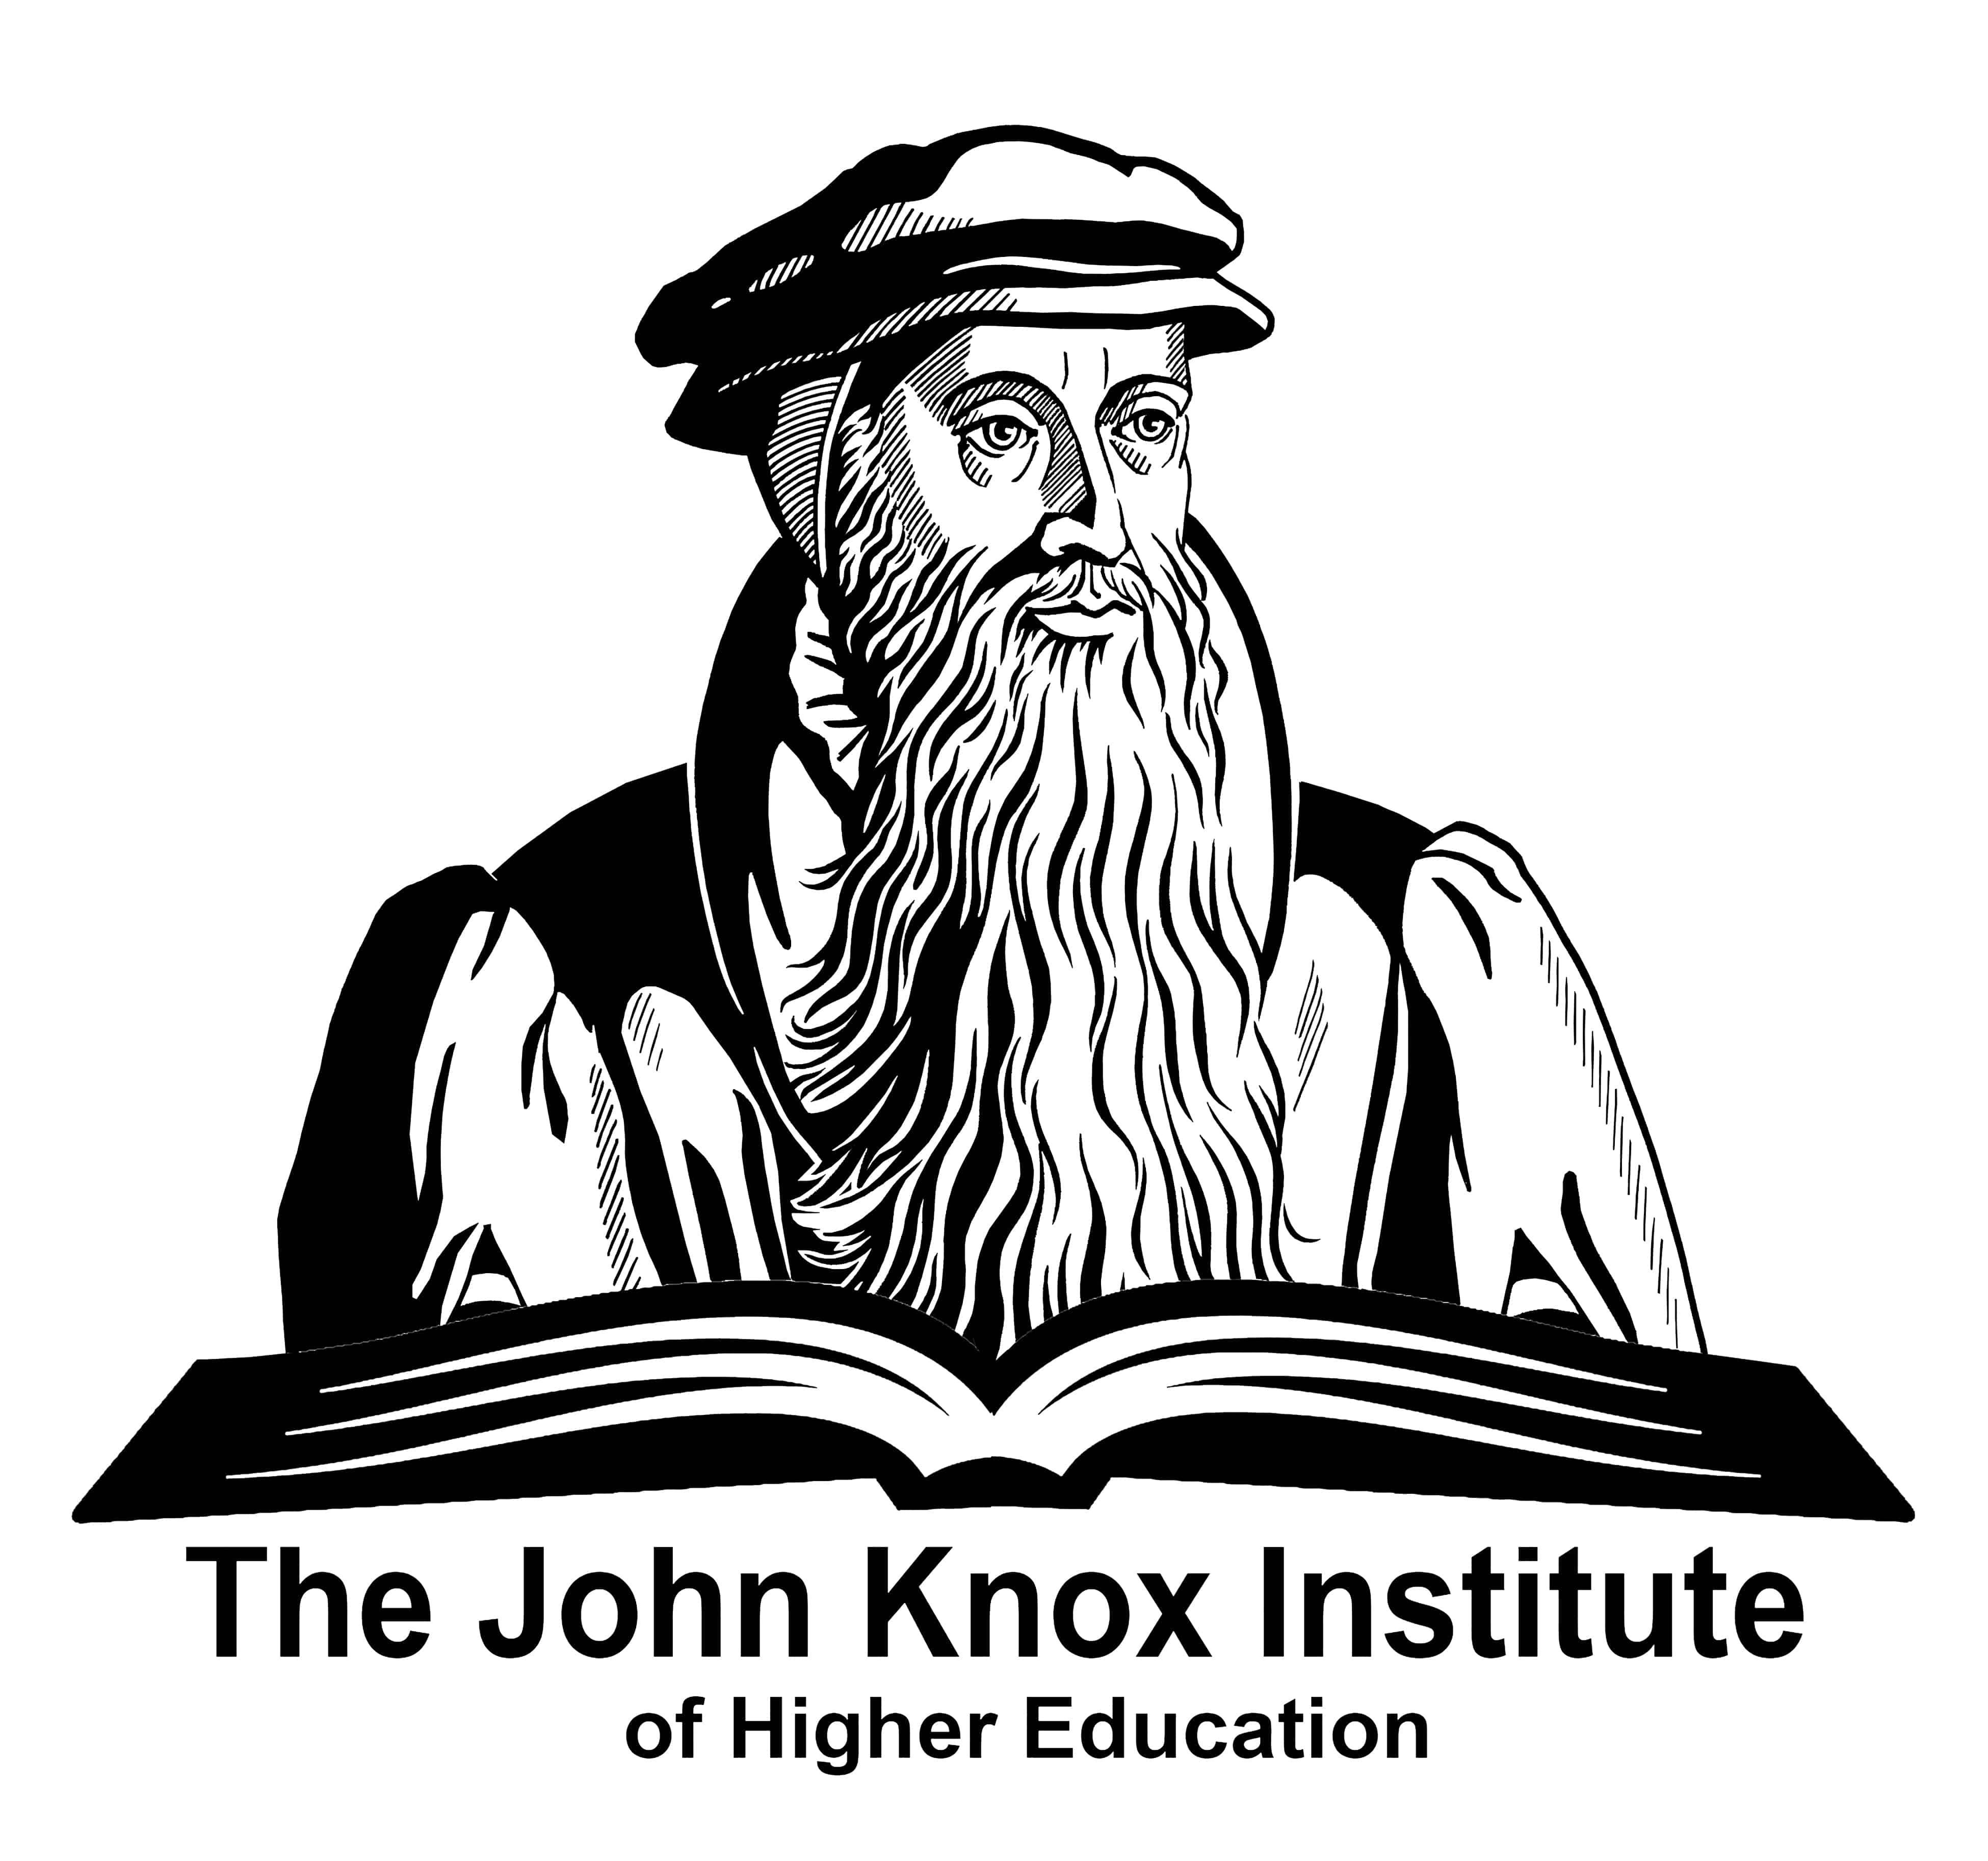 The John Knox Institute